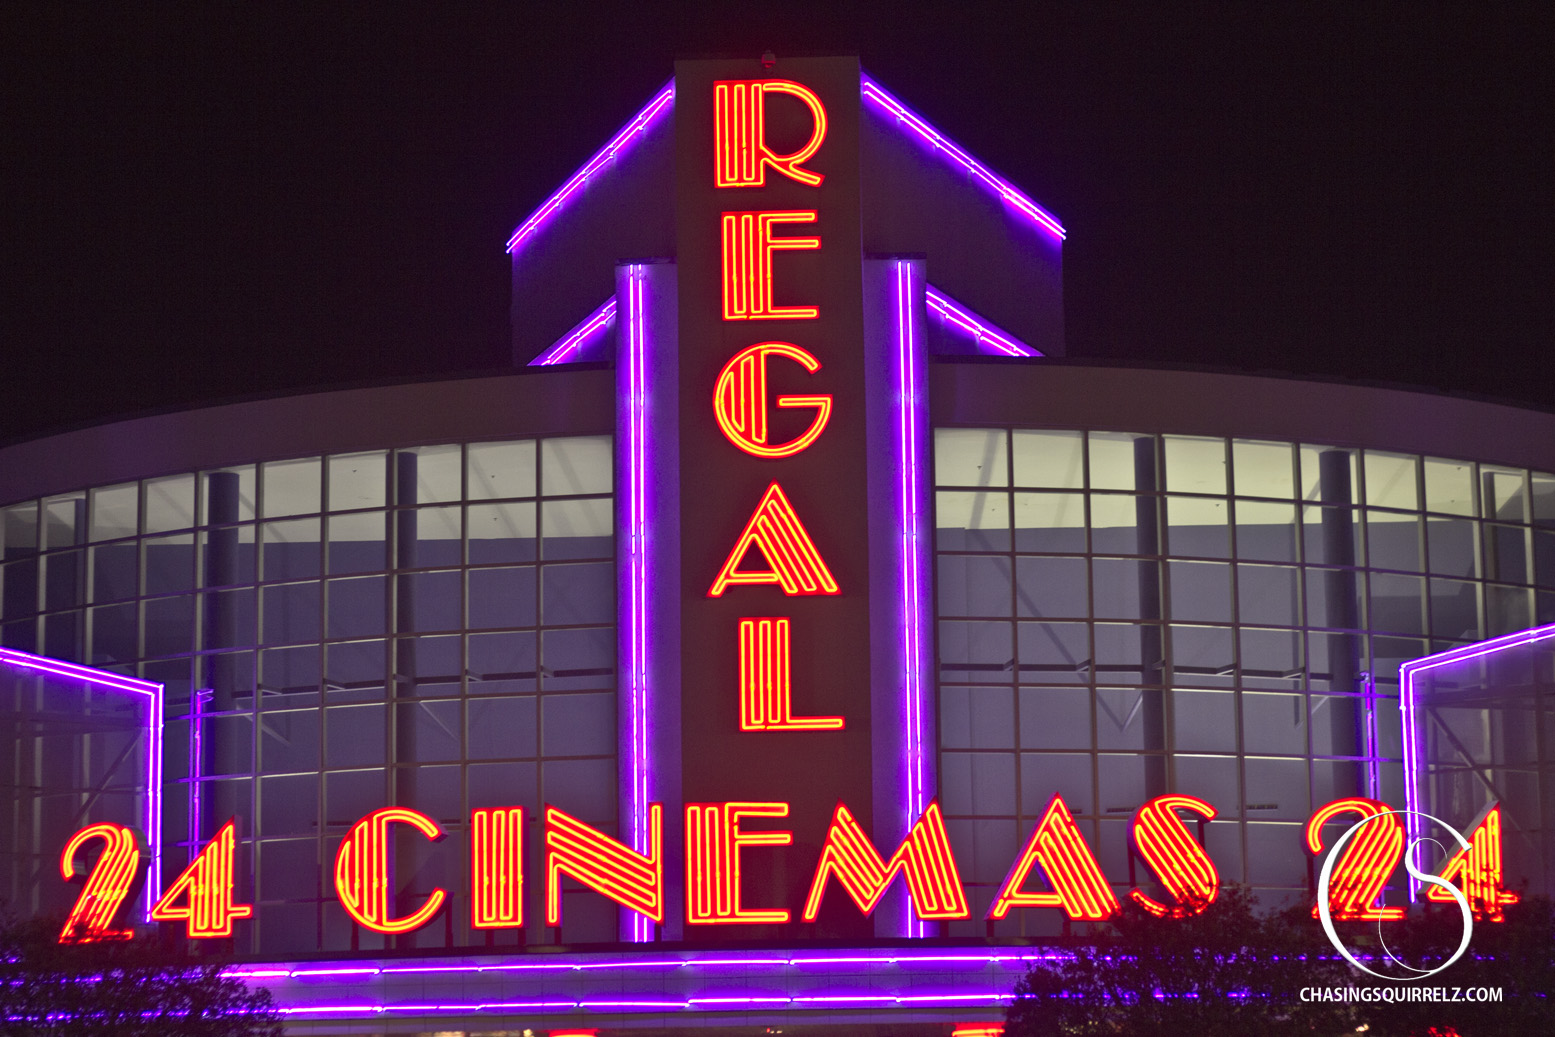 Regal Cinemas Hollywood 24 @ North I, Atlanta, GA. K likes. Movie Theater/5(K).